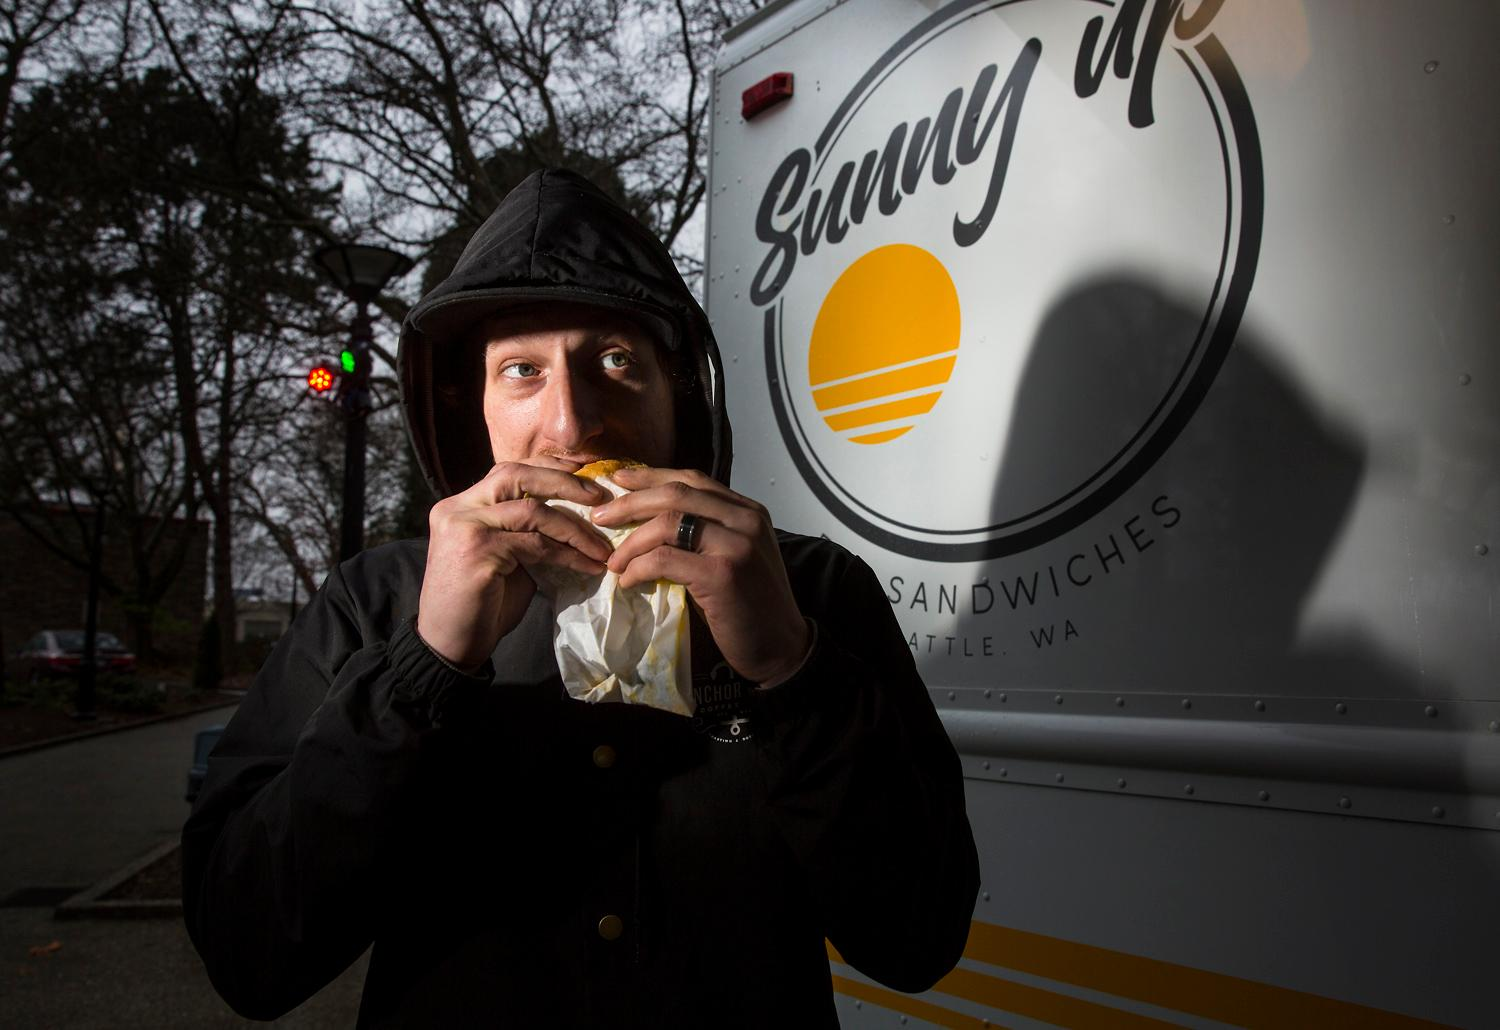 A customer chows down on one of the breakfast sandwiches prepared by the Sunny Up food truck. The truck specializes in serving breakfast sandwiches that are named after the owner's favorite and most influential women. (Sy Bean / Seattle Refined)